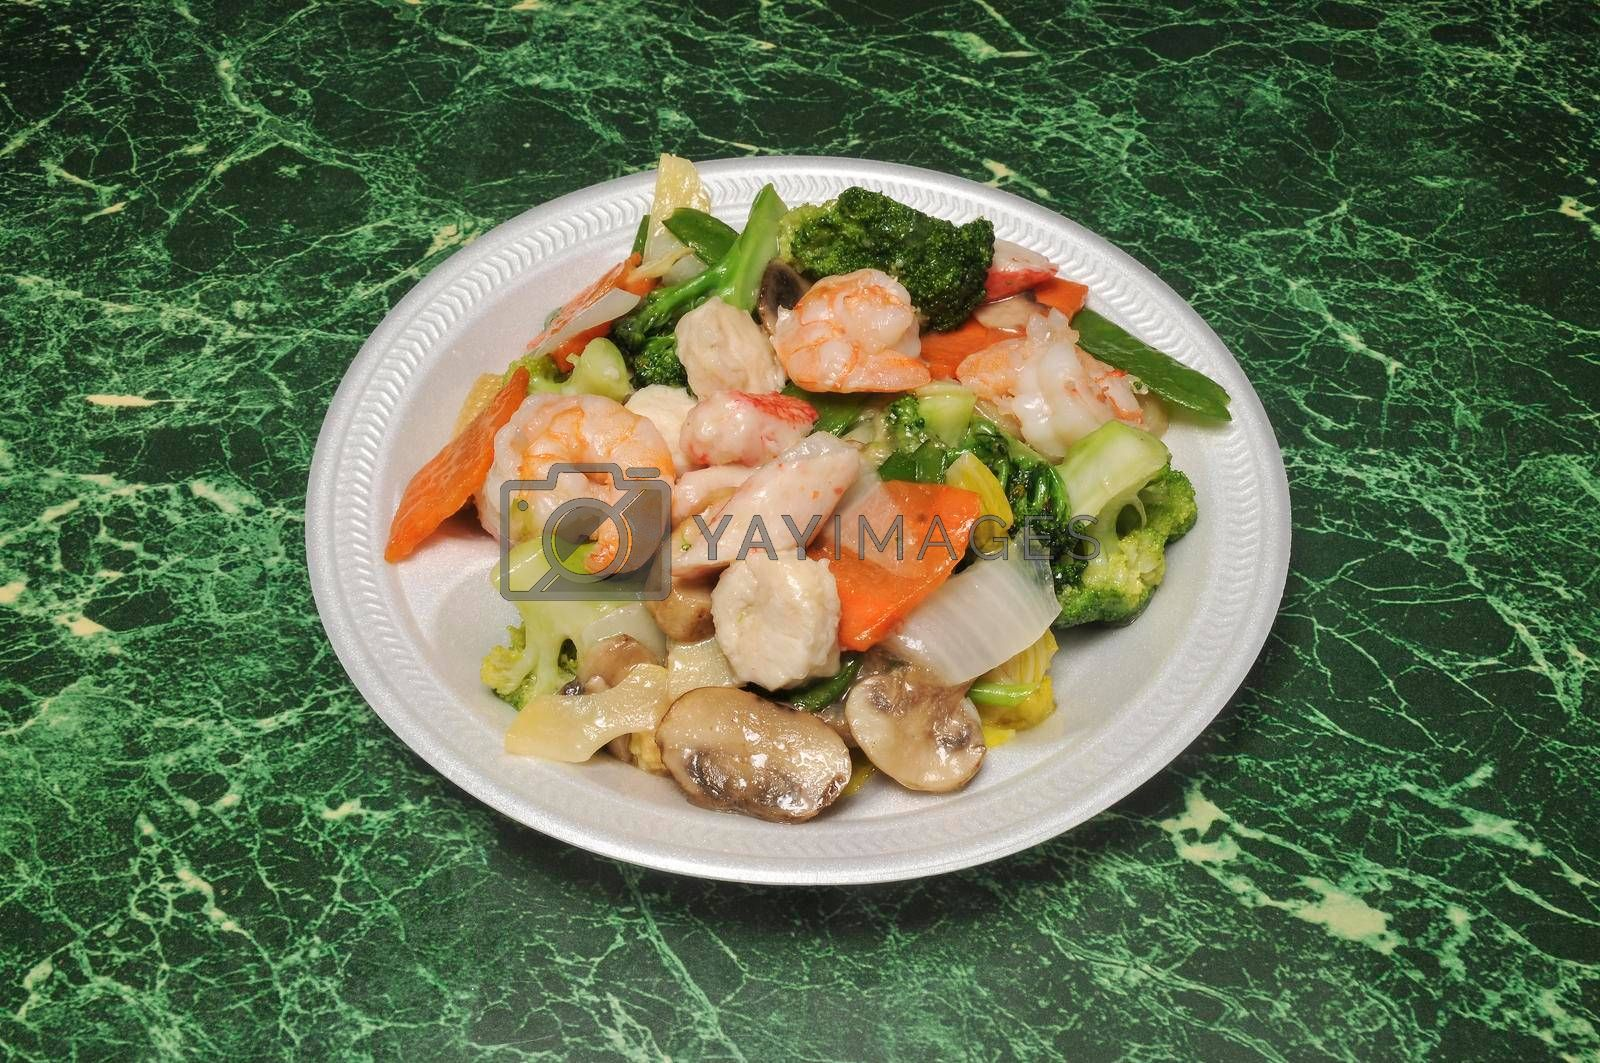 Delicious Chinese dish known best as seafood delight